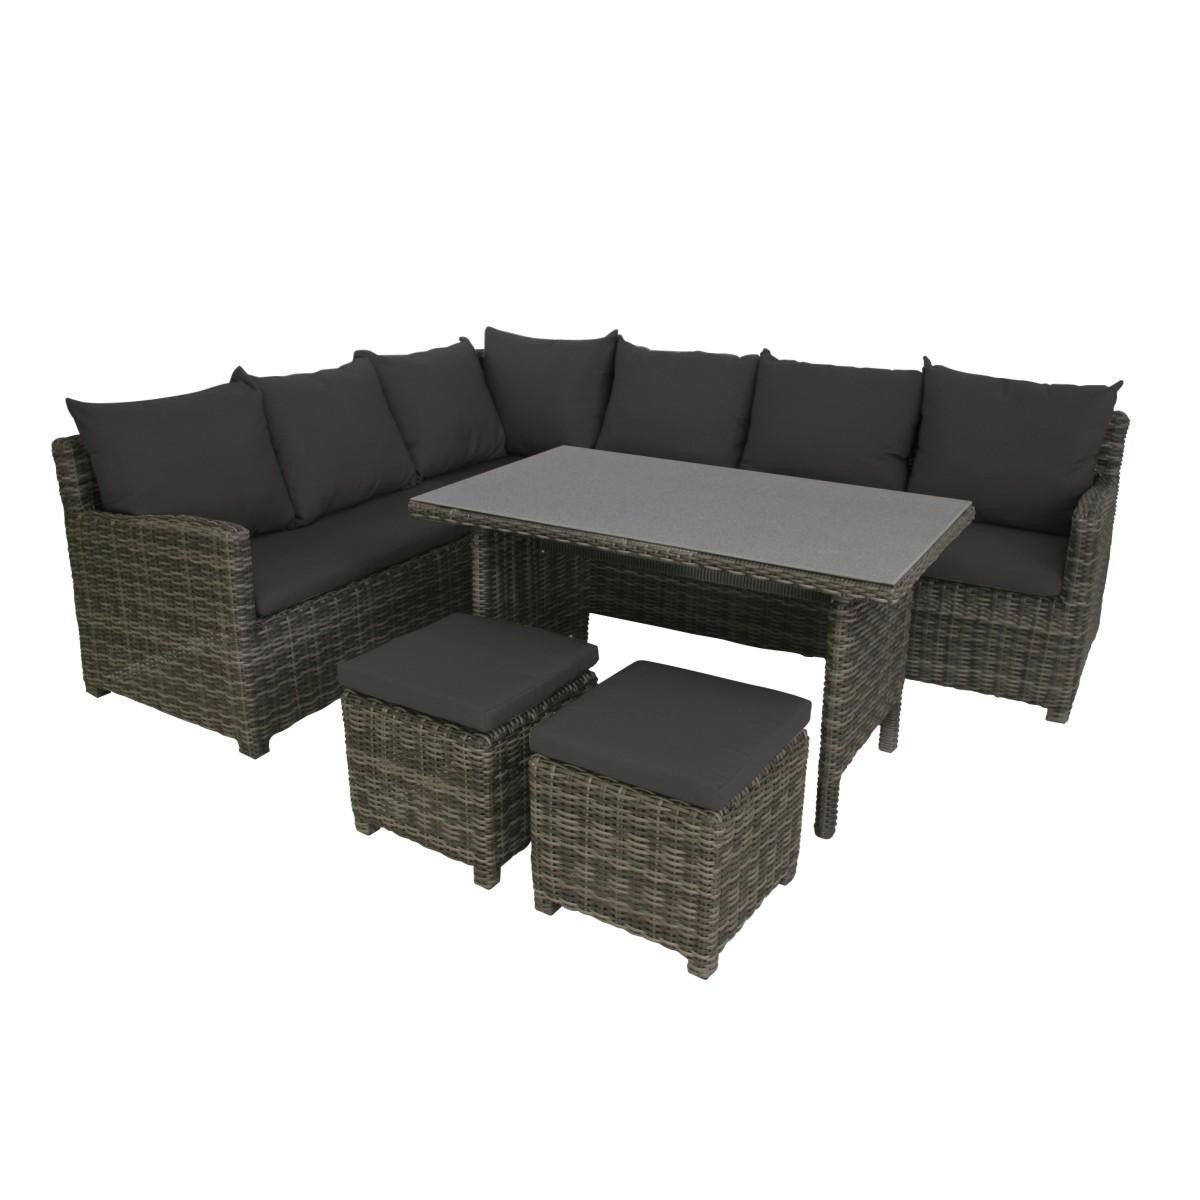 greemotion lounge set miami mehrfarbig 208x88x77cm g nstig kaufen. Black Bedroom Furniture Sets. Home Design Ideas